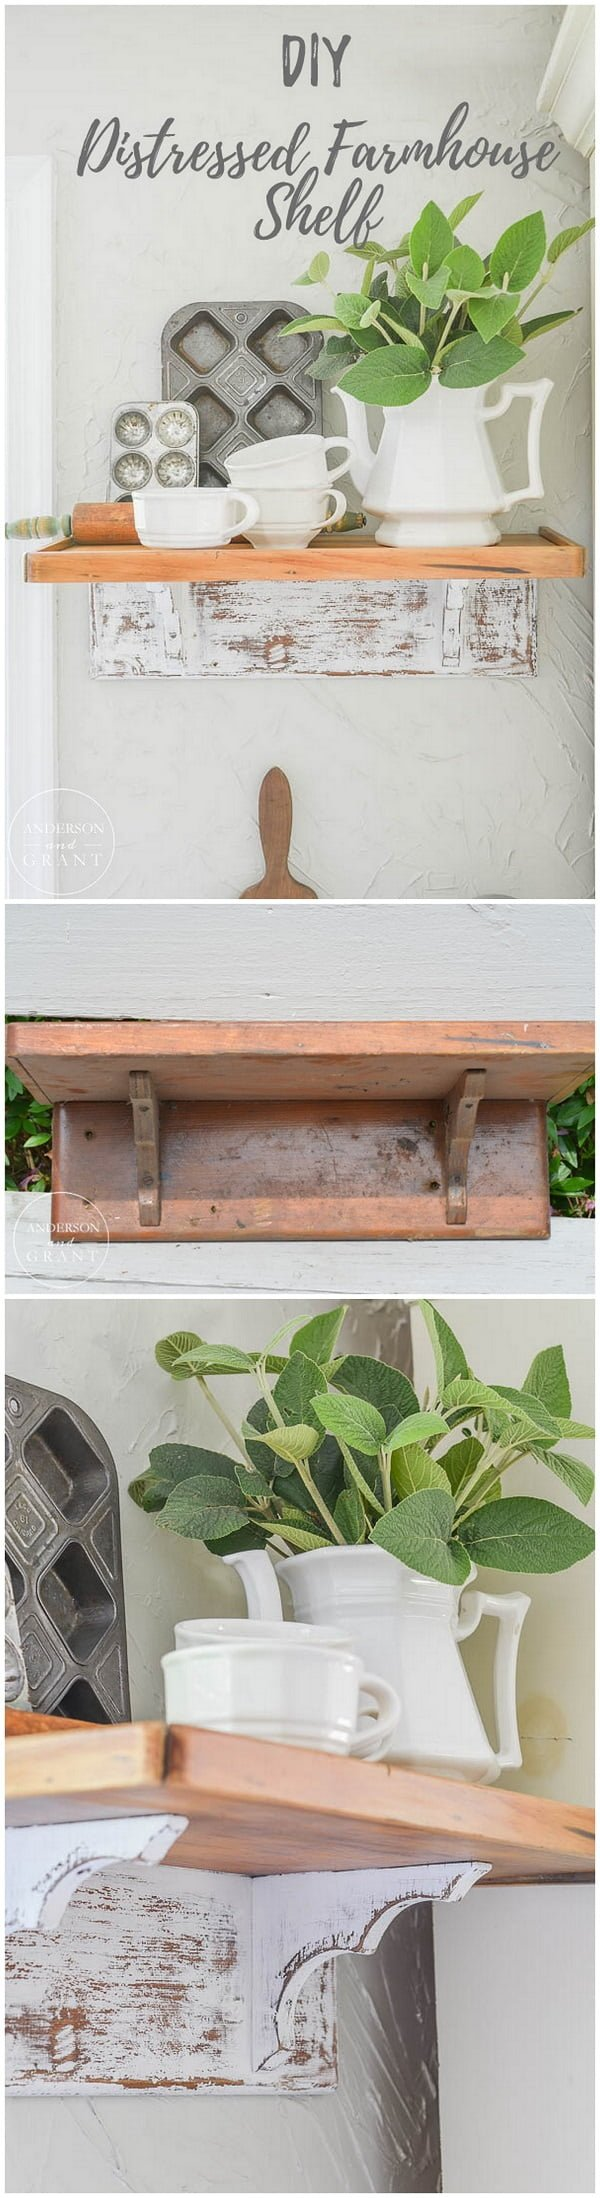 Easy idea on how to make a #DIY distressed #farmhouse shelf #homedecor #crafts #project